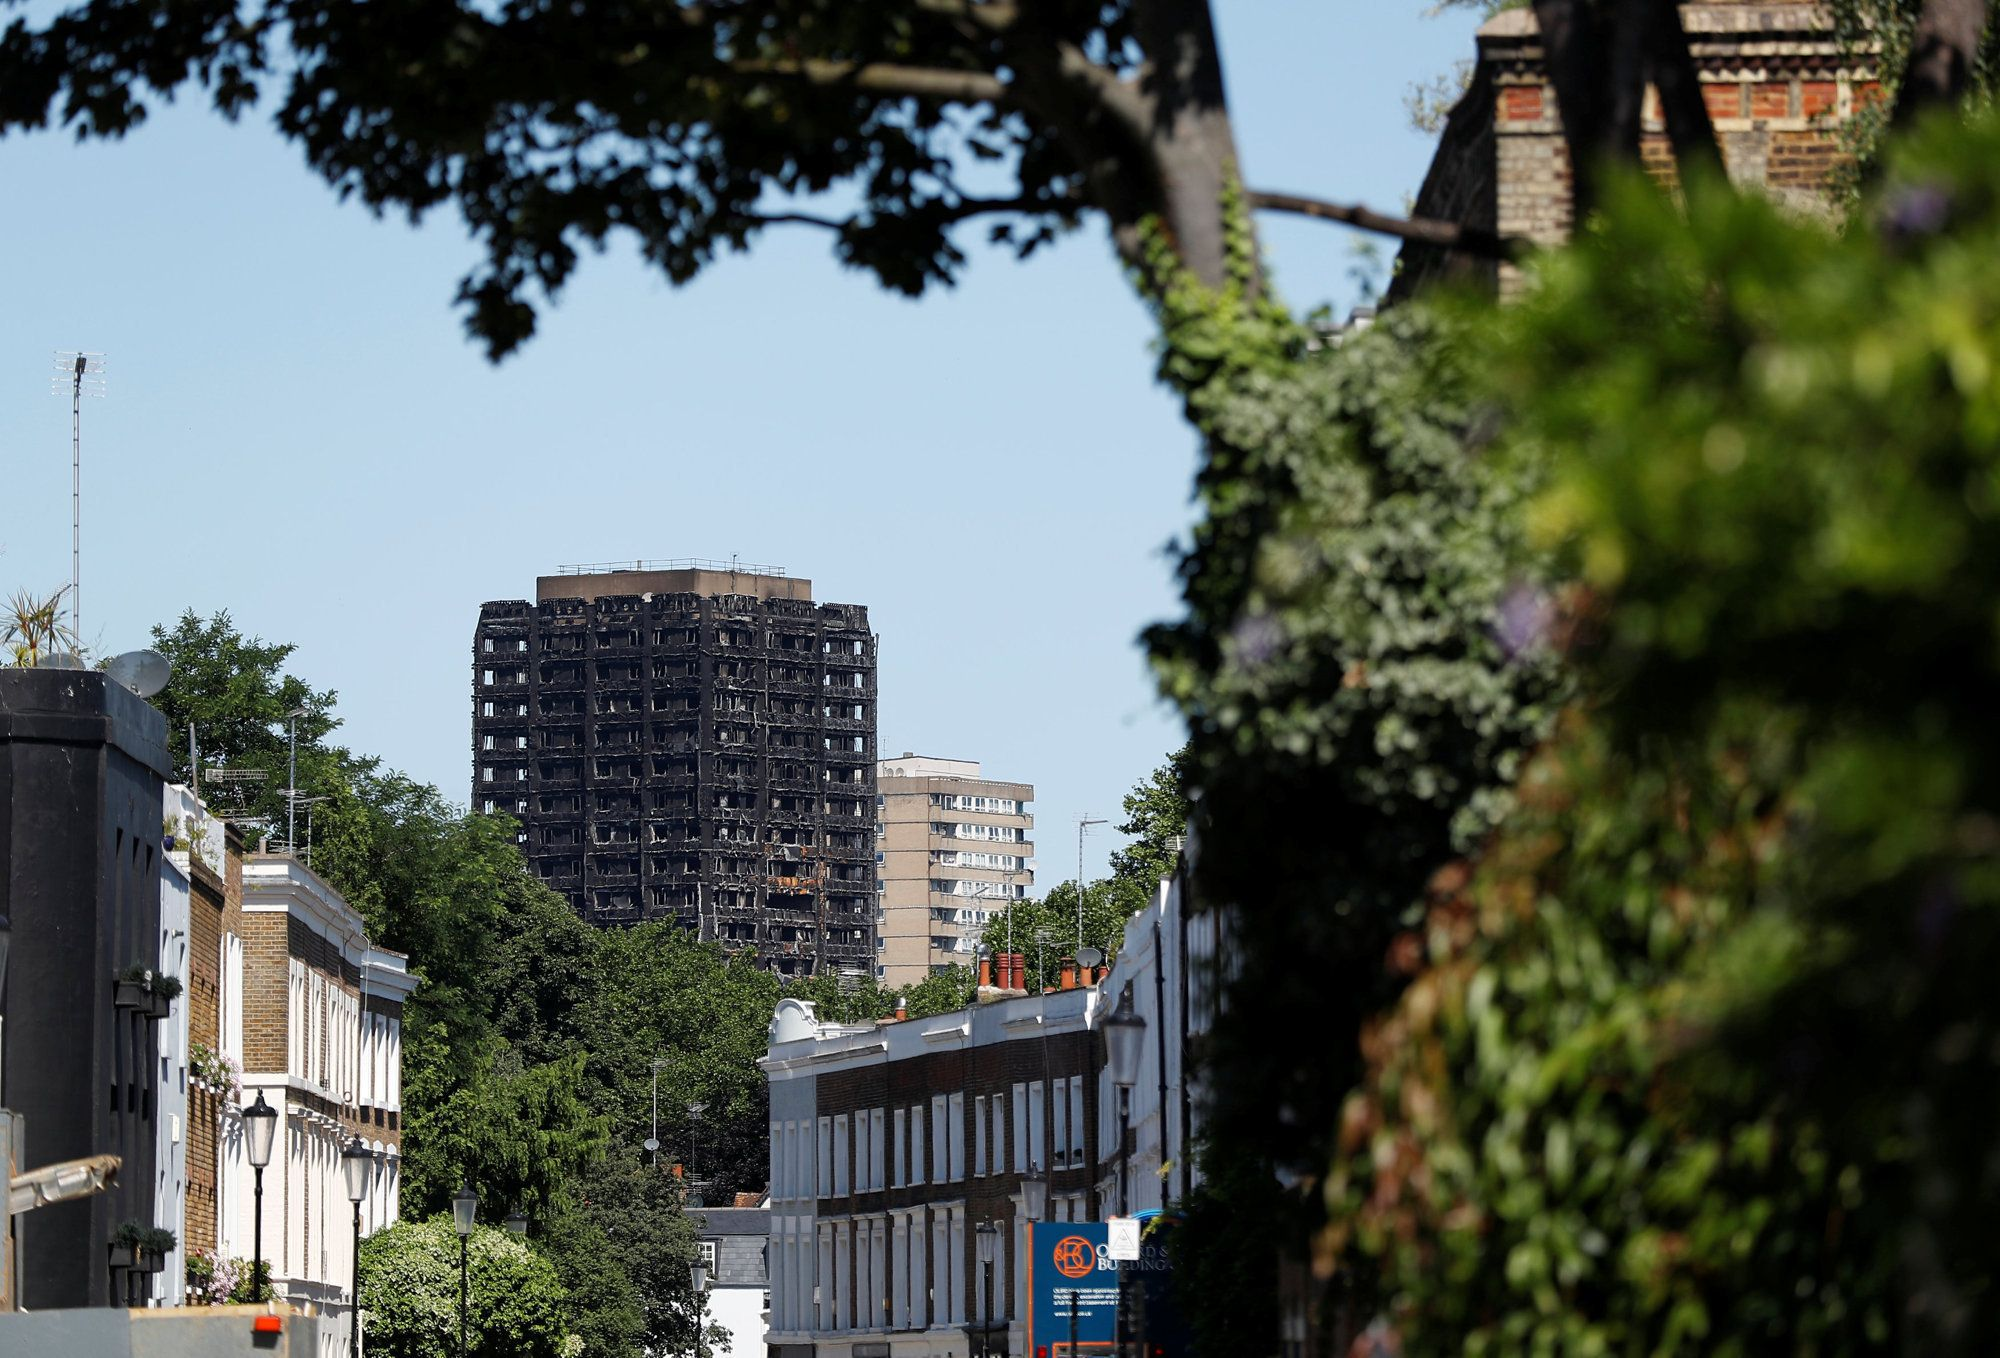 NHS To Fund £50m Health Check Service For Grenfell Tower Blaze